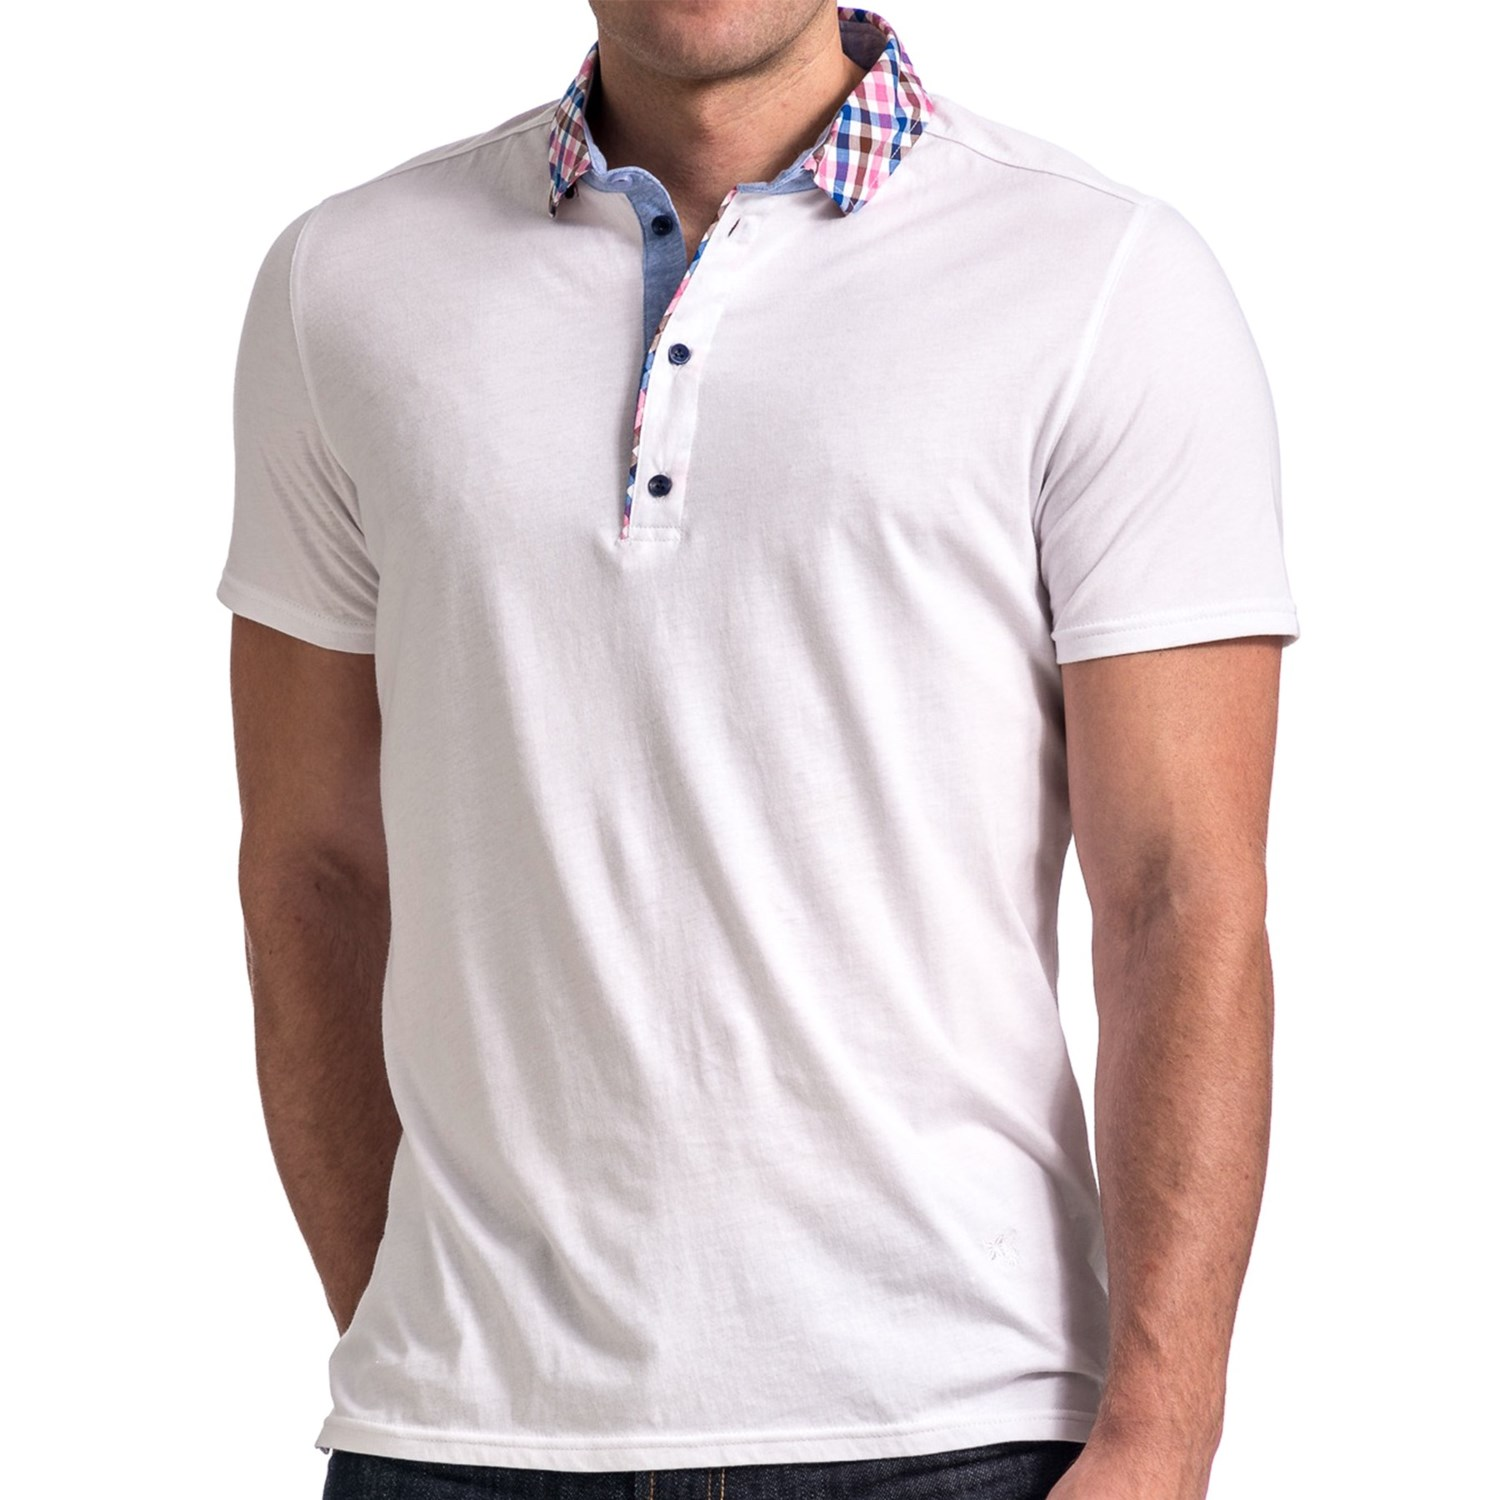 Stone rose jersey knit polo shirt for men 8064v save 72 for Knitted polo shirt mens